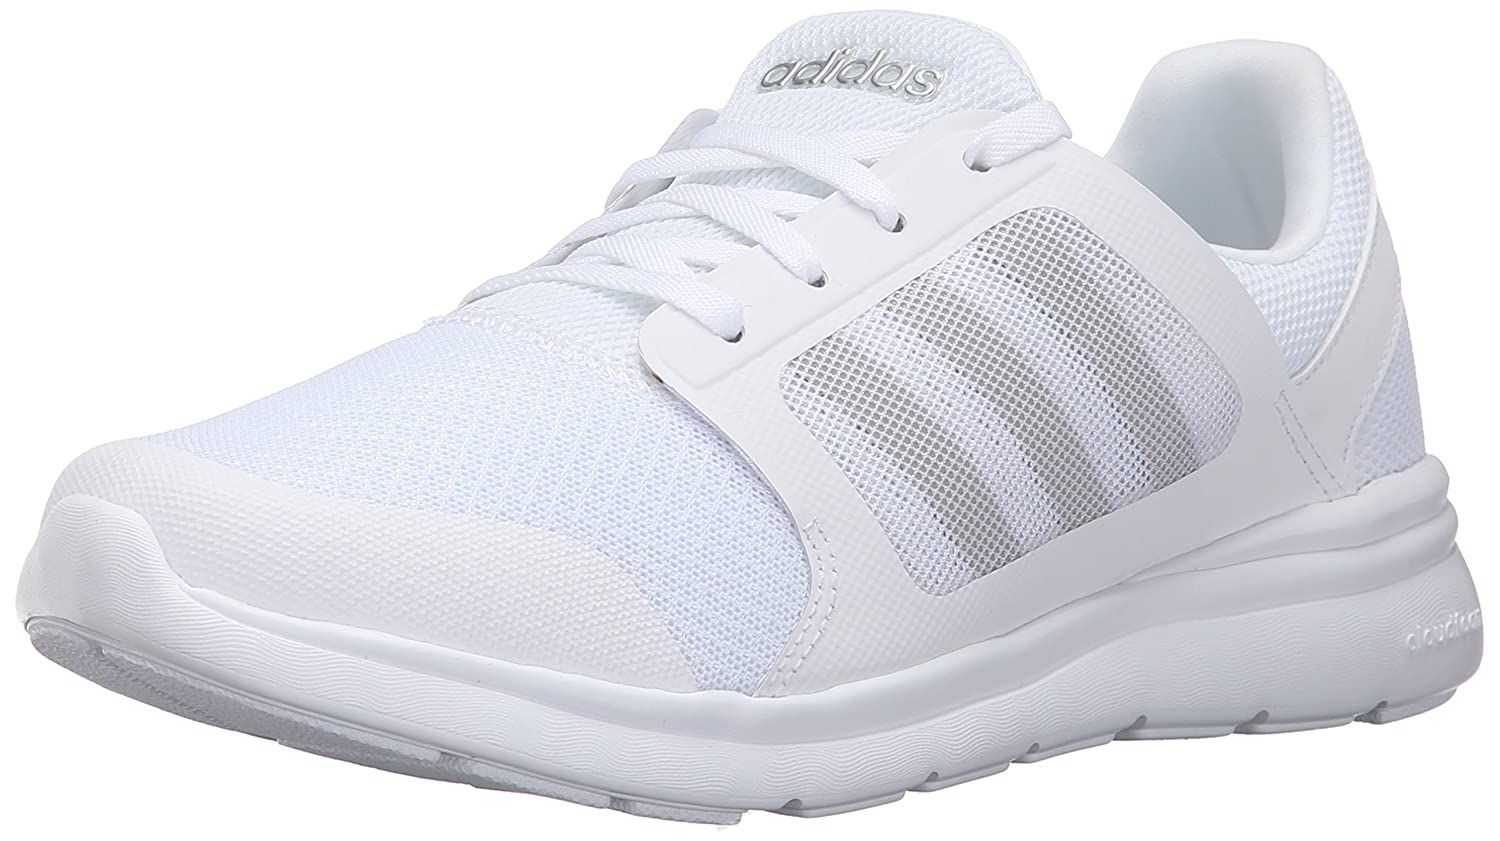 adidas NEO Women's Cloudfoam Xpression Casual Sneaker CLOUDFOAM XPRESSION W-W